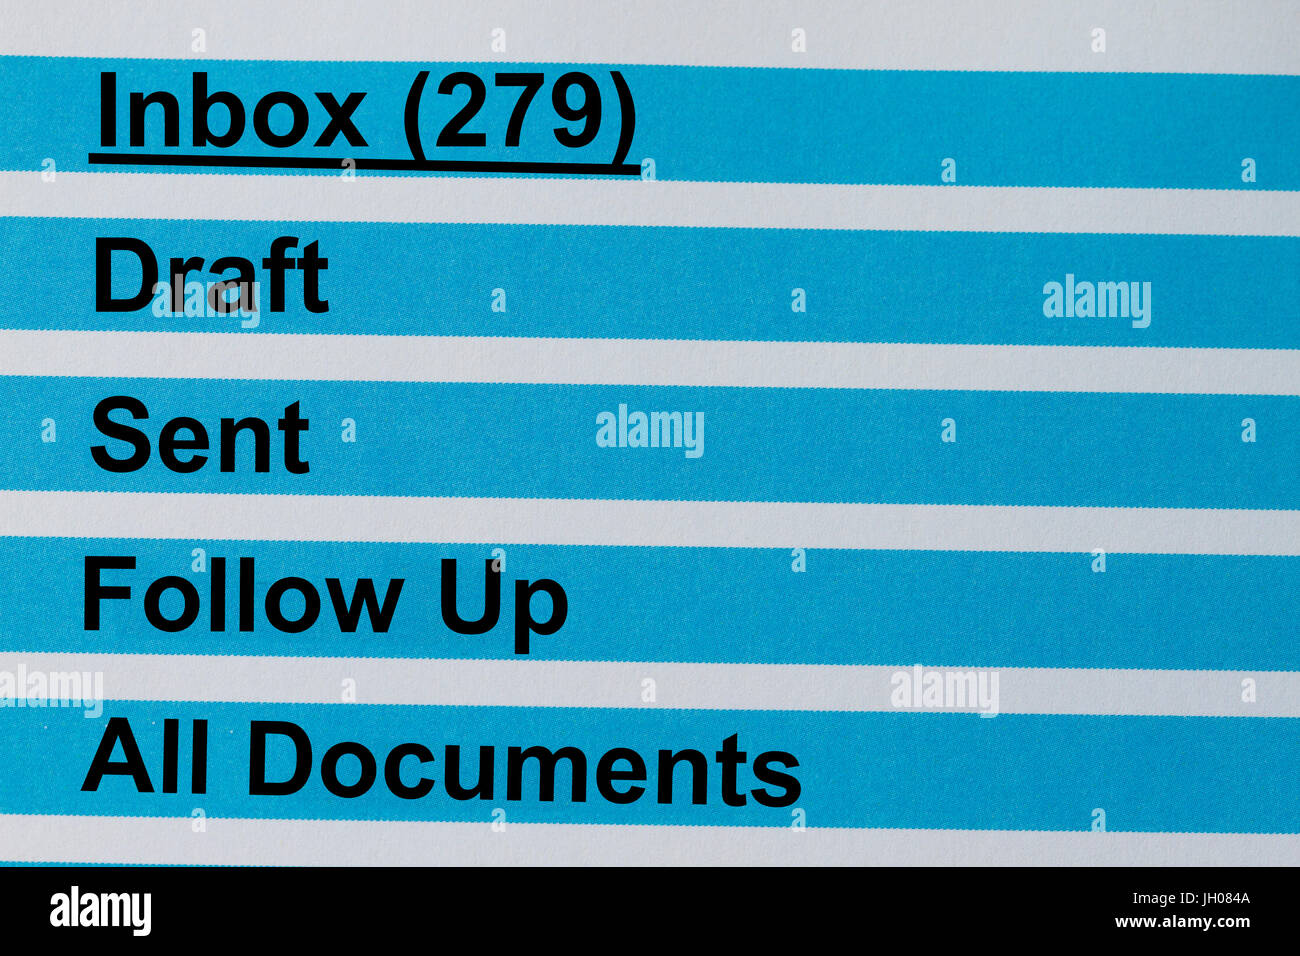 New messages on the inbox of an email. - Stock Image